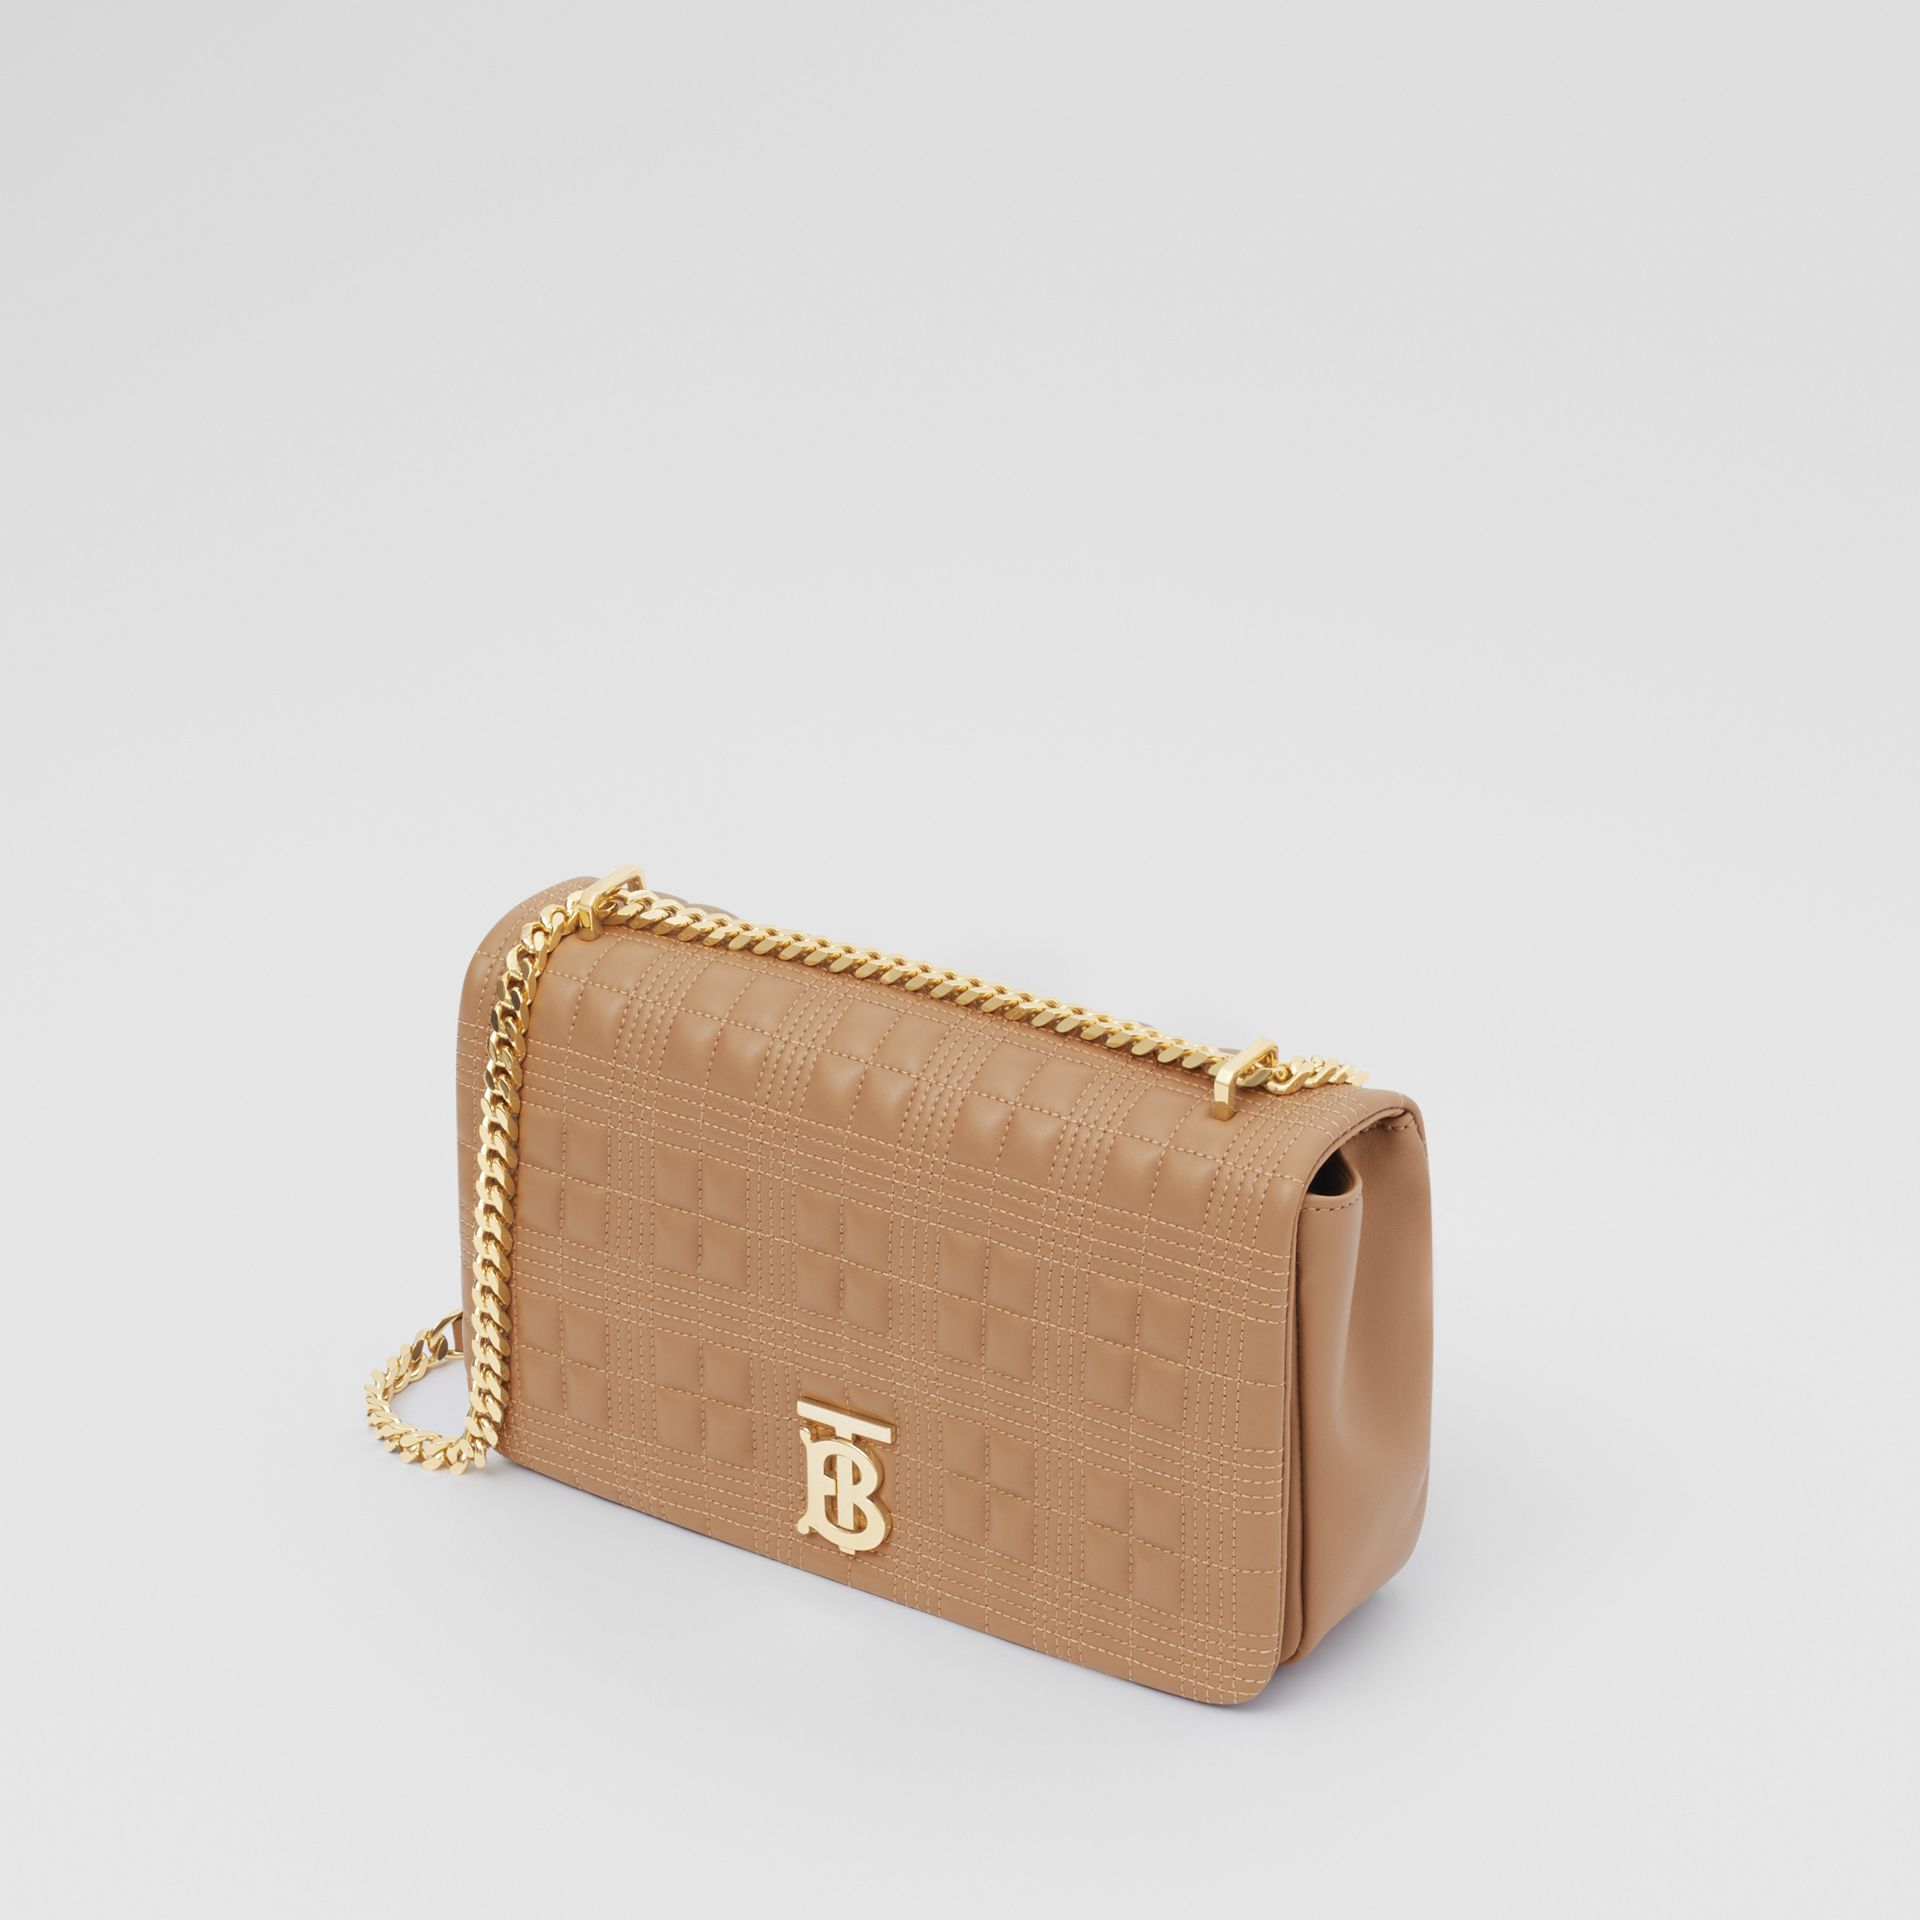 Medium Quilted Lambskin Lola Bag in Camel/light Gold - Women | Burberry Australia - gallery image 5